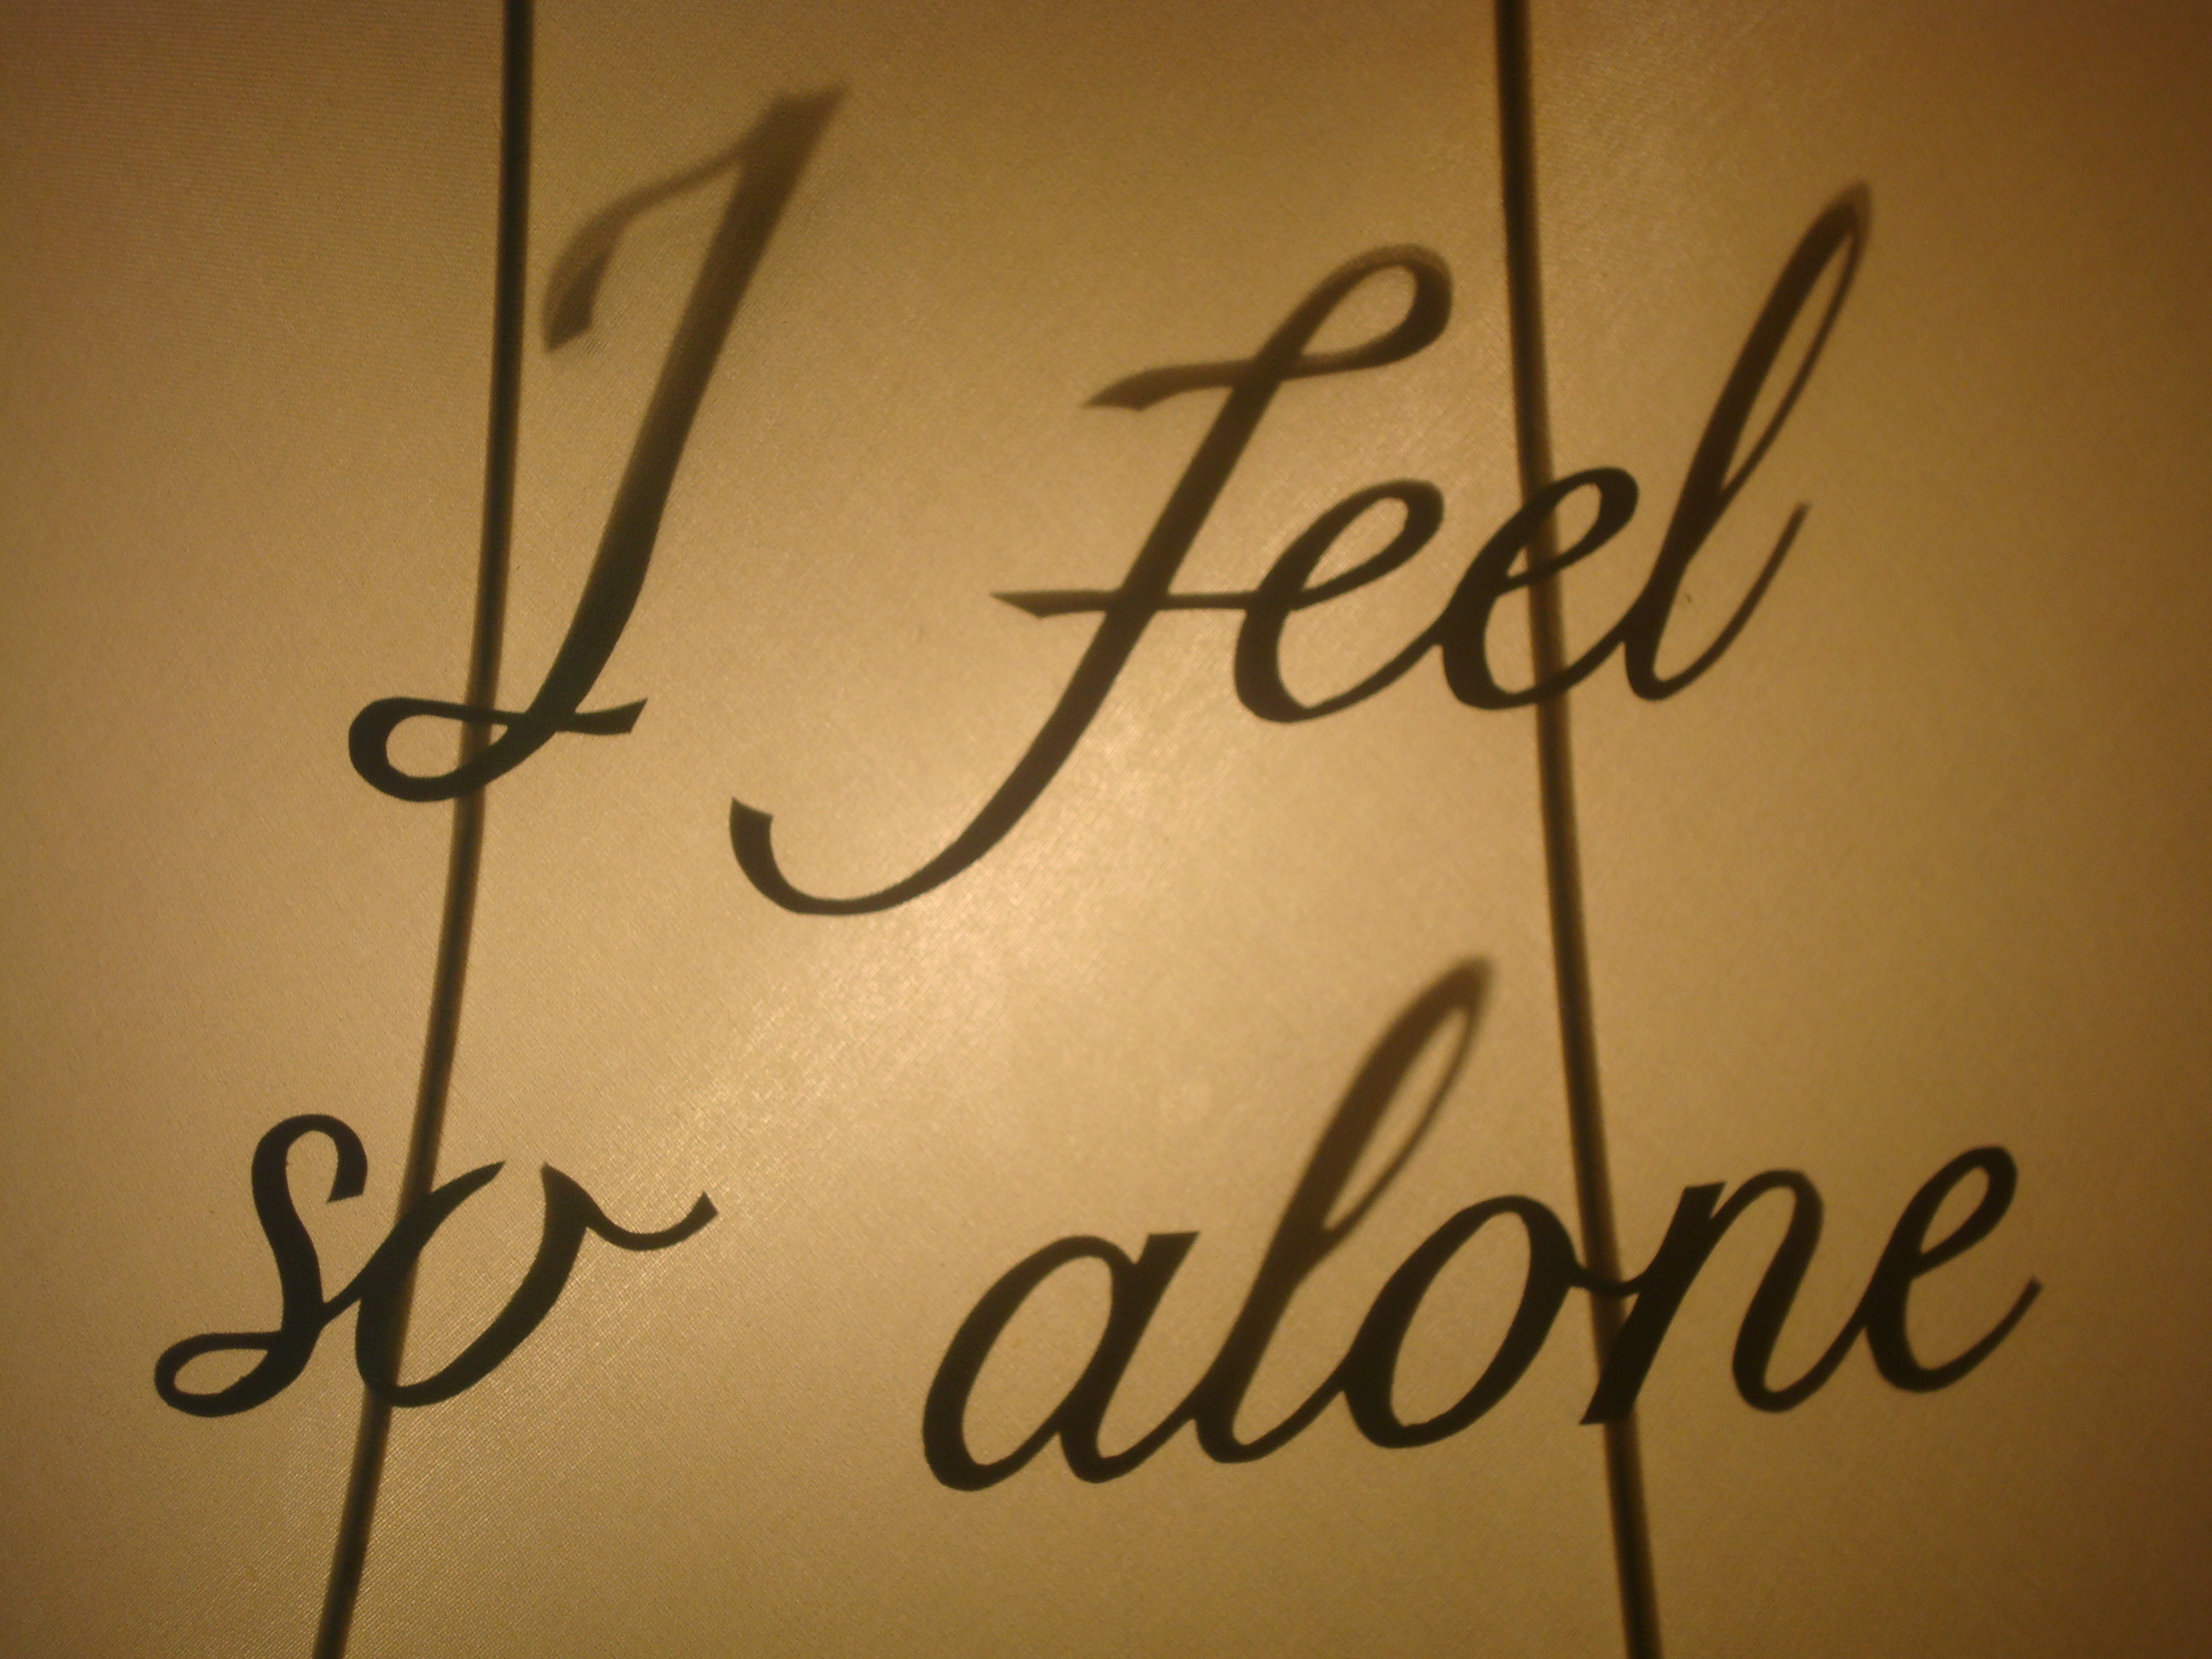 I Feel So Alone (detail)